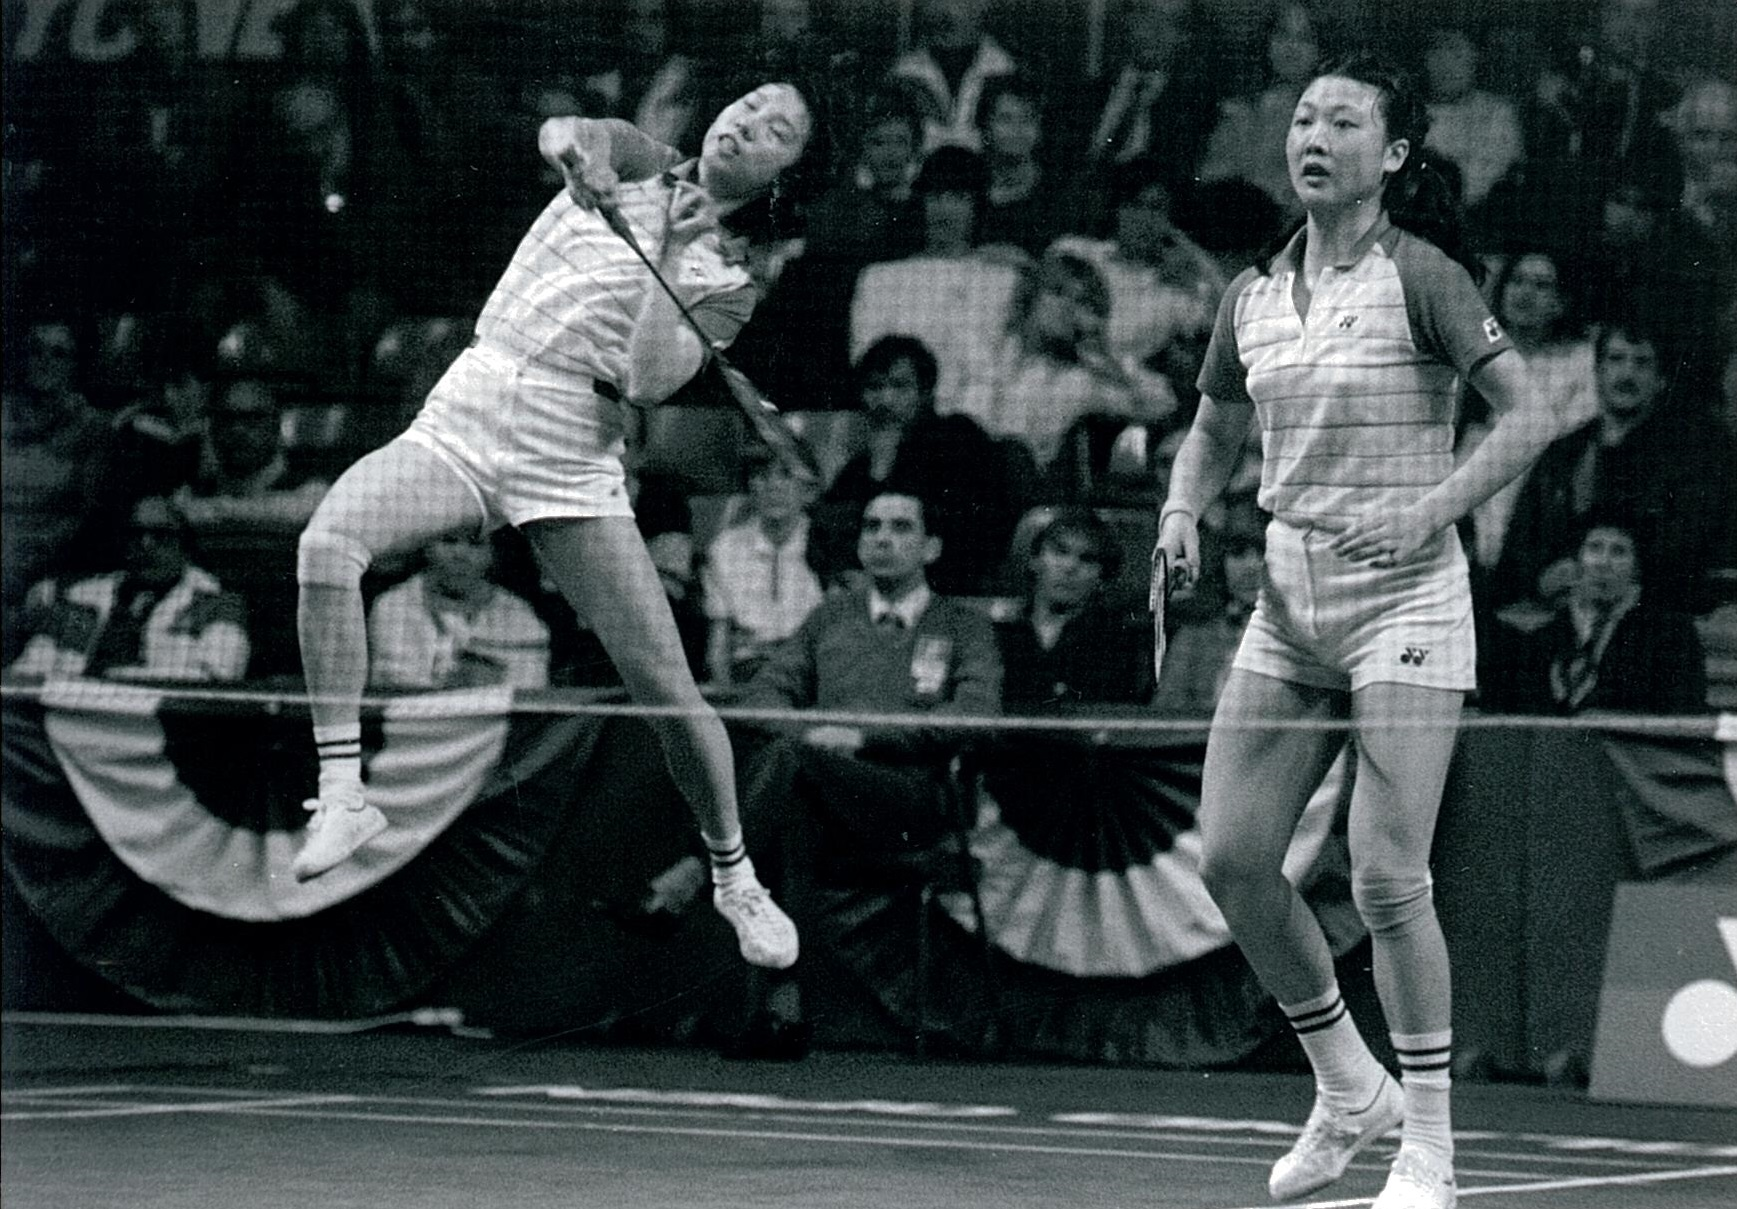 Han aiping + li lingwei in acion in 1985 - pic by ulrich reddiq